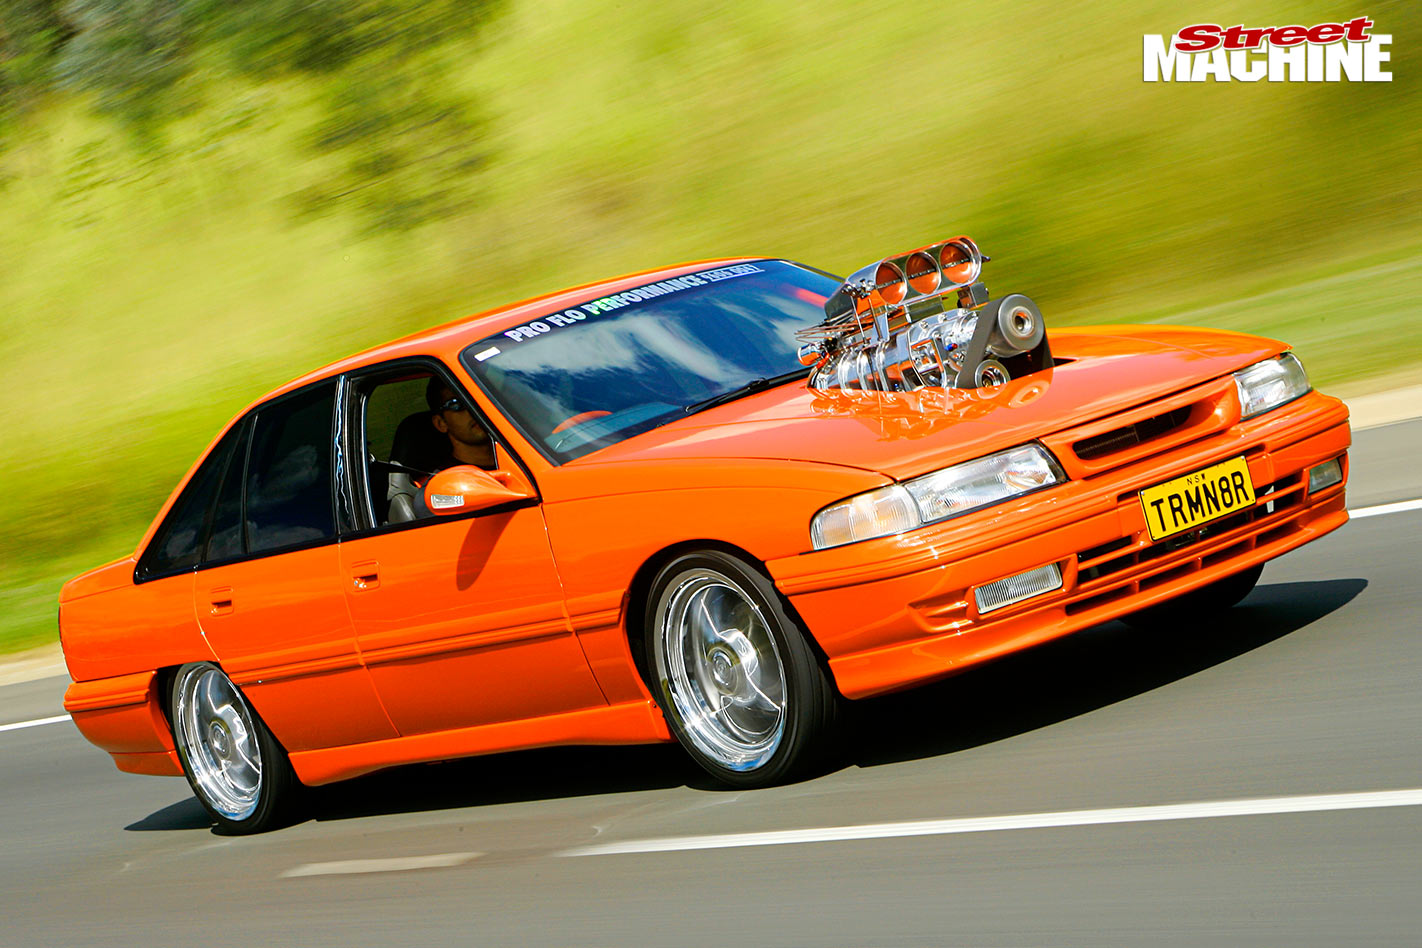 Blown 355-cube Holden VP Commodore - TRMN8R